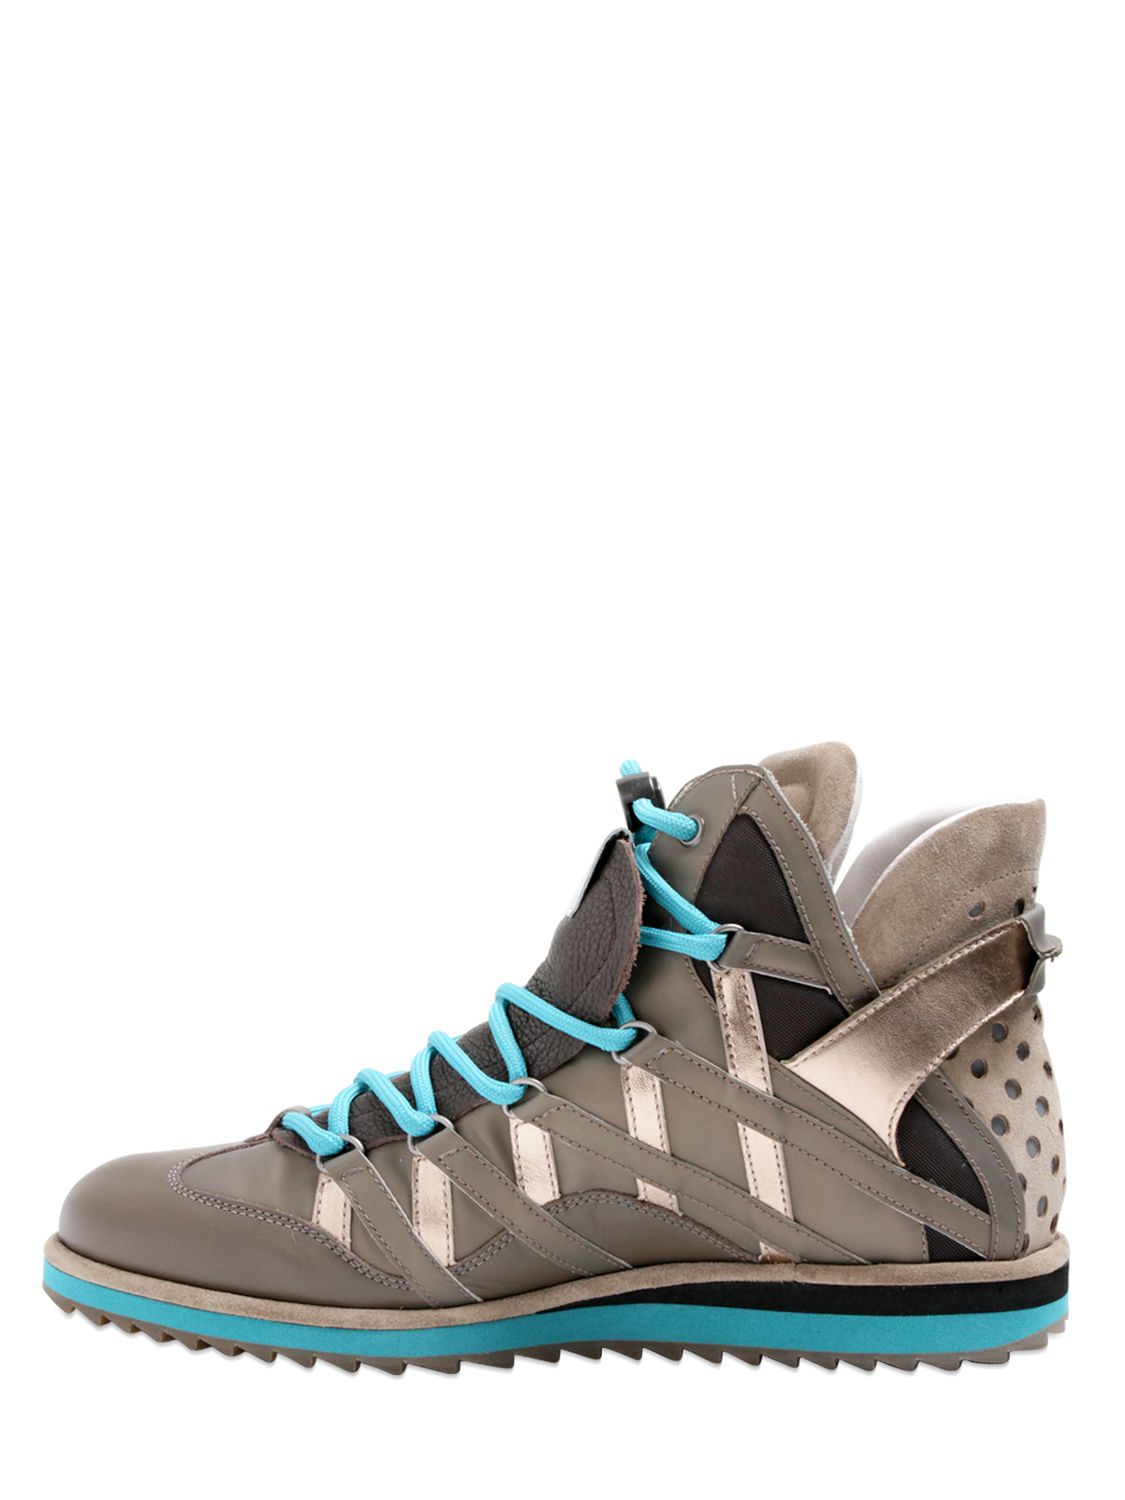 Dolce Amp Gabbana Grained Leather High Top Sneakers In Blue